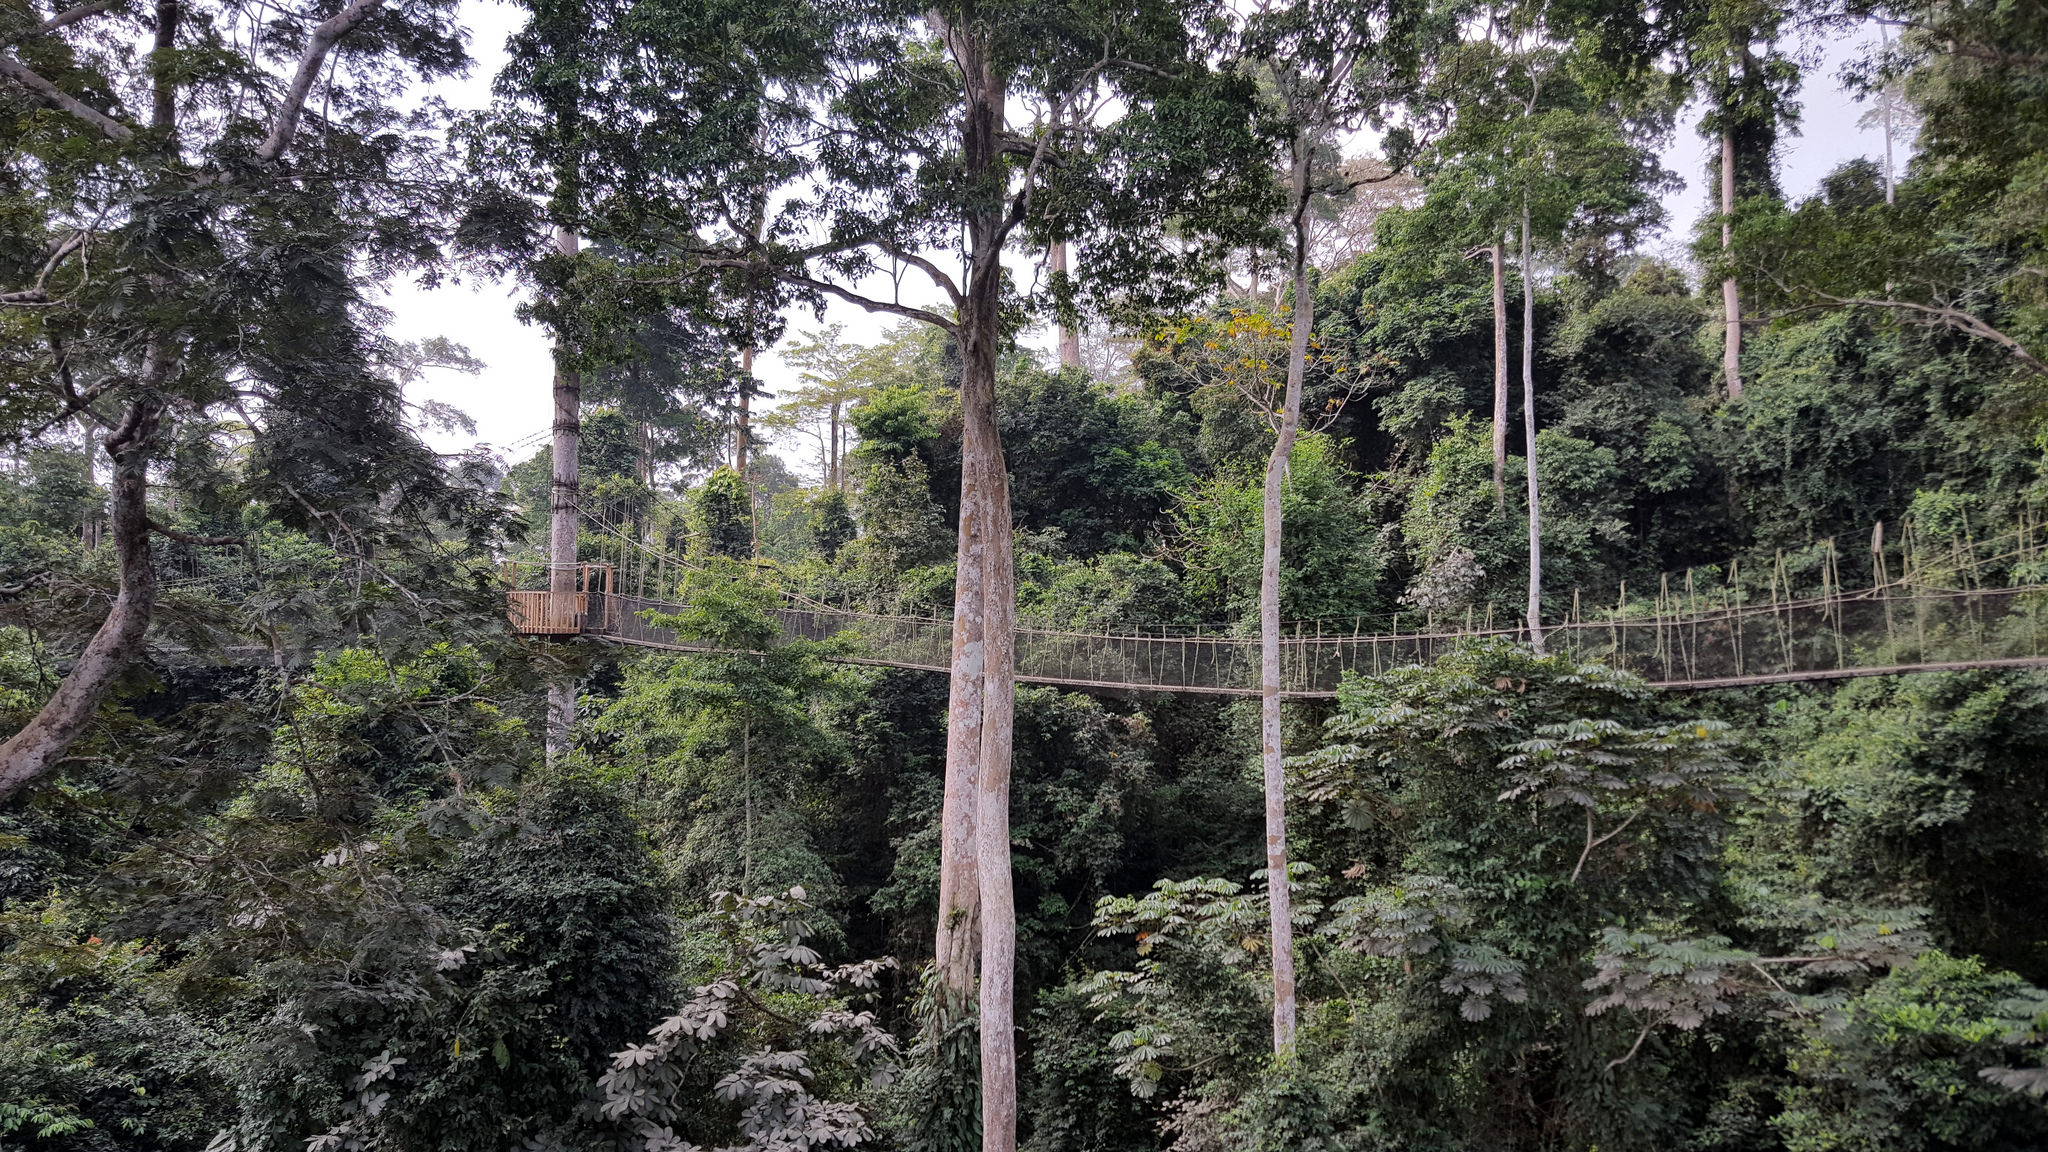 Canopy walkway at Kakum National Park, January 2018 (Dan Casey photo)